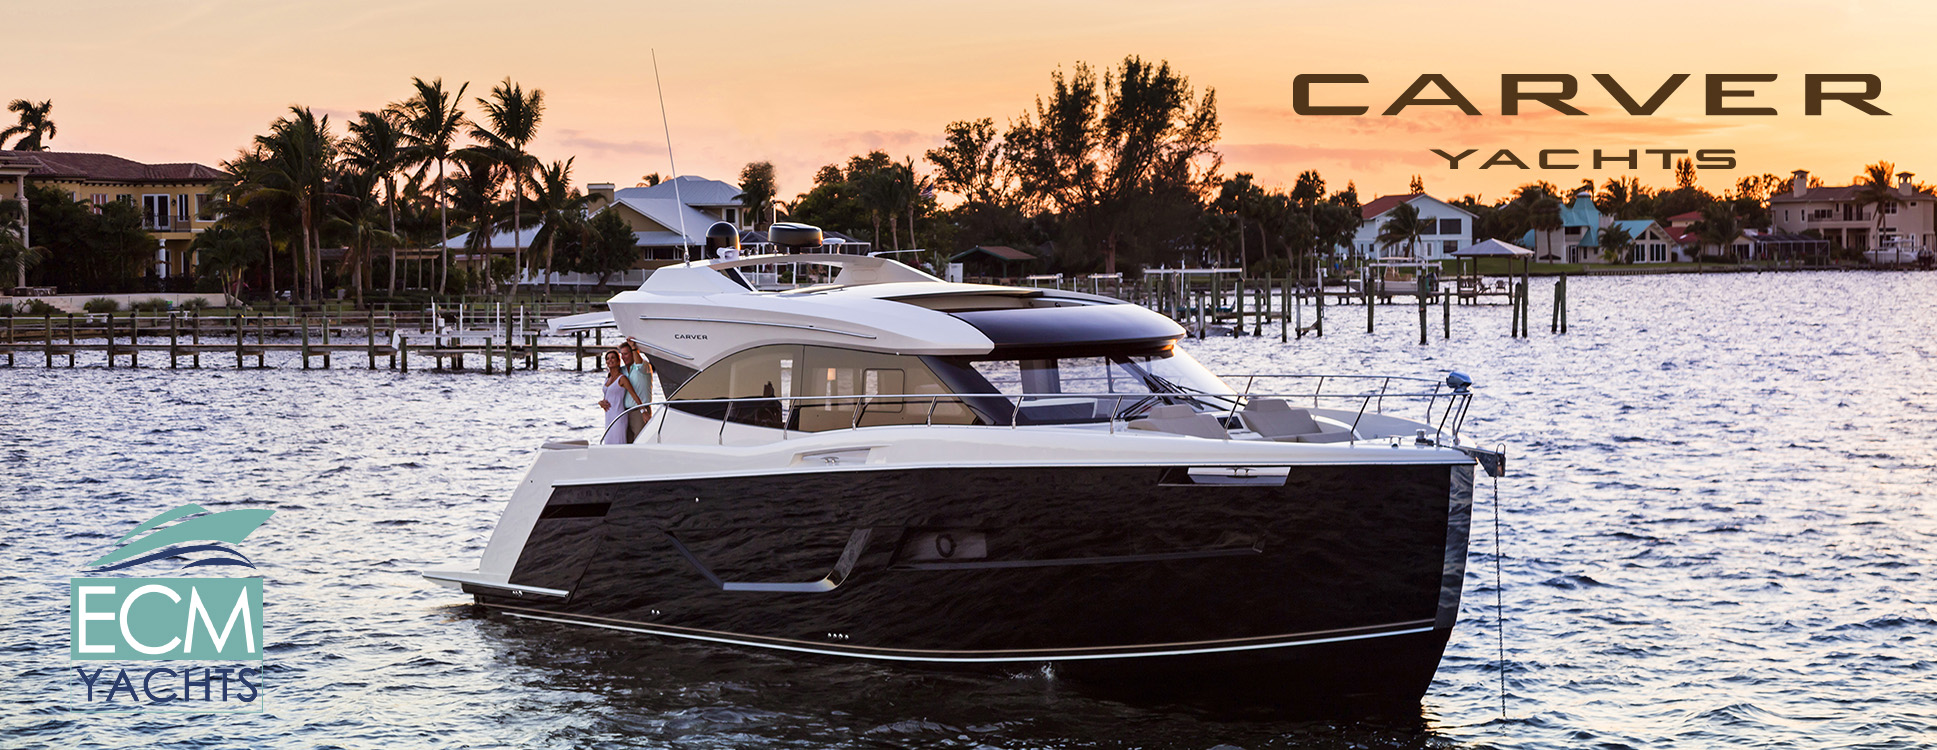 About ECM Yachts - Emerald Coast Marine Group